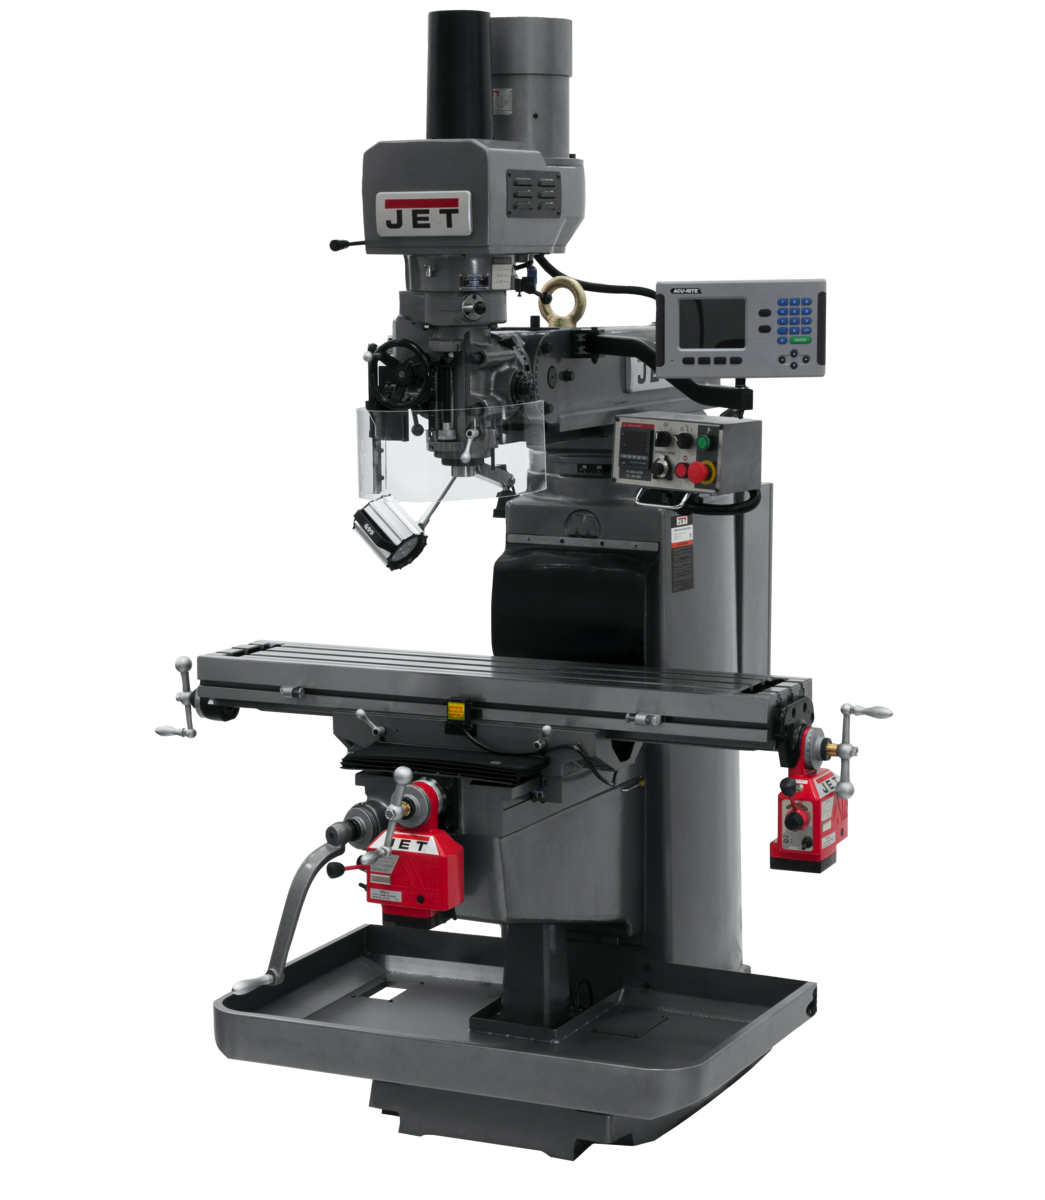 JTM-1050EVS2/230 Mill With 3-Axis Acu-Rite 203 DRO (Knee) With X and Y-Axis Powerfeeds and Air Powered Draw Bar